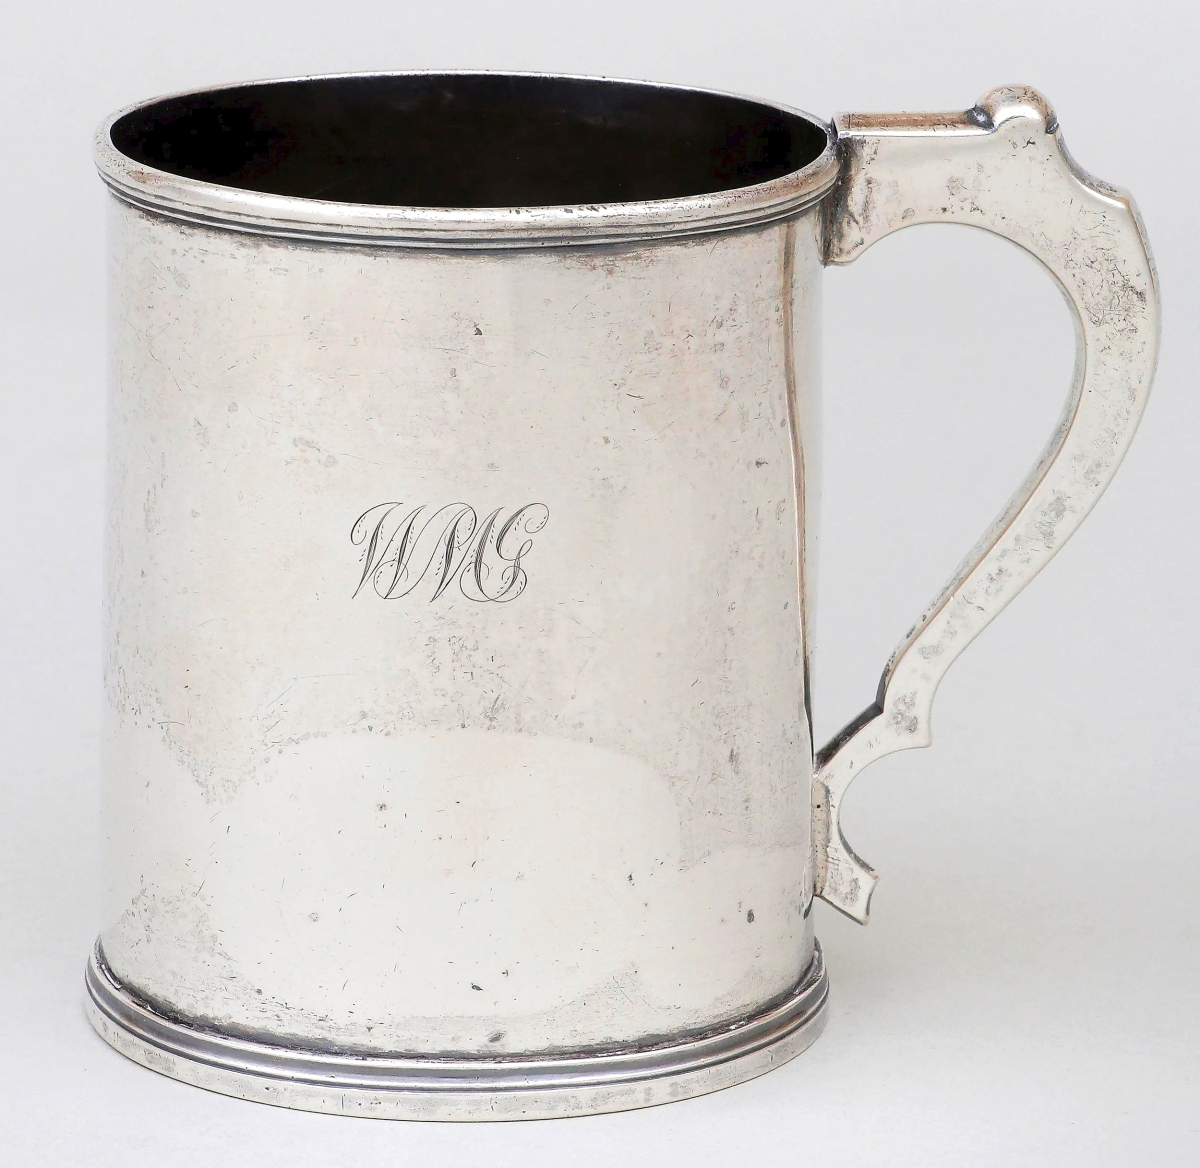 Simple in form, but high in price was this coin silver cann by Kentucky silversmith Asa Blanchard that brought $22,800. The firm noted that at 5 inches high, this was one of the of the largest and finest Blanchard canns known.